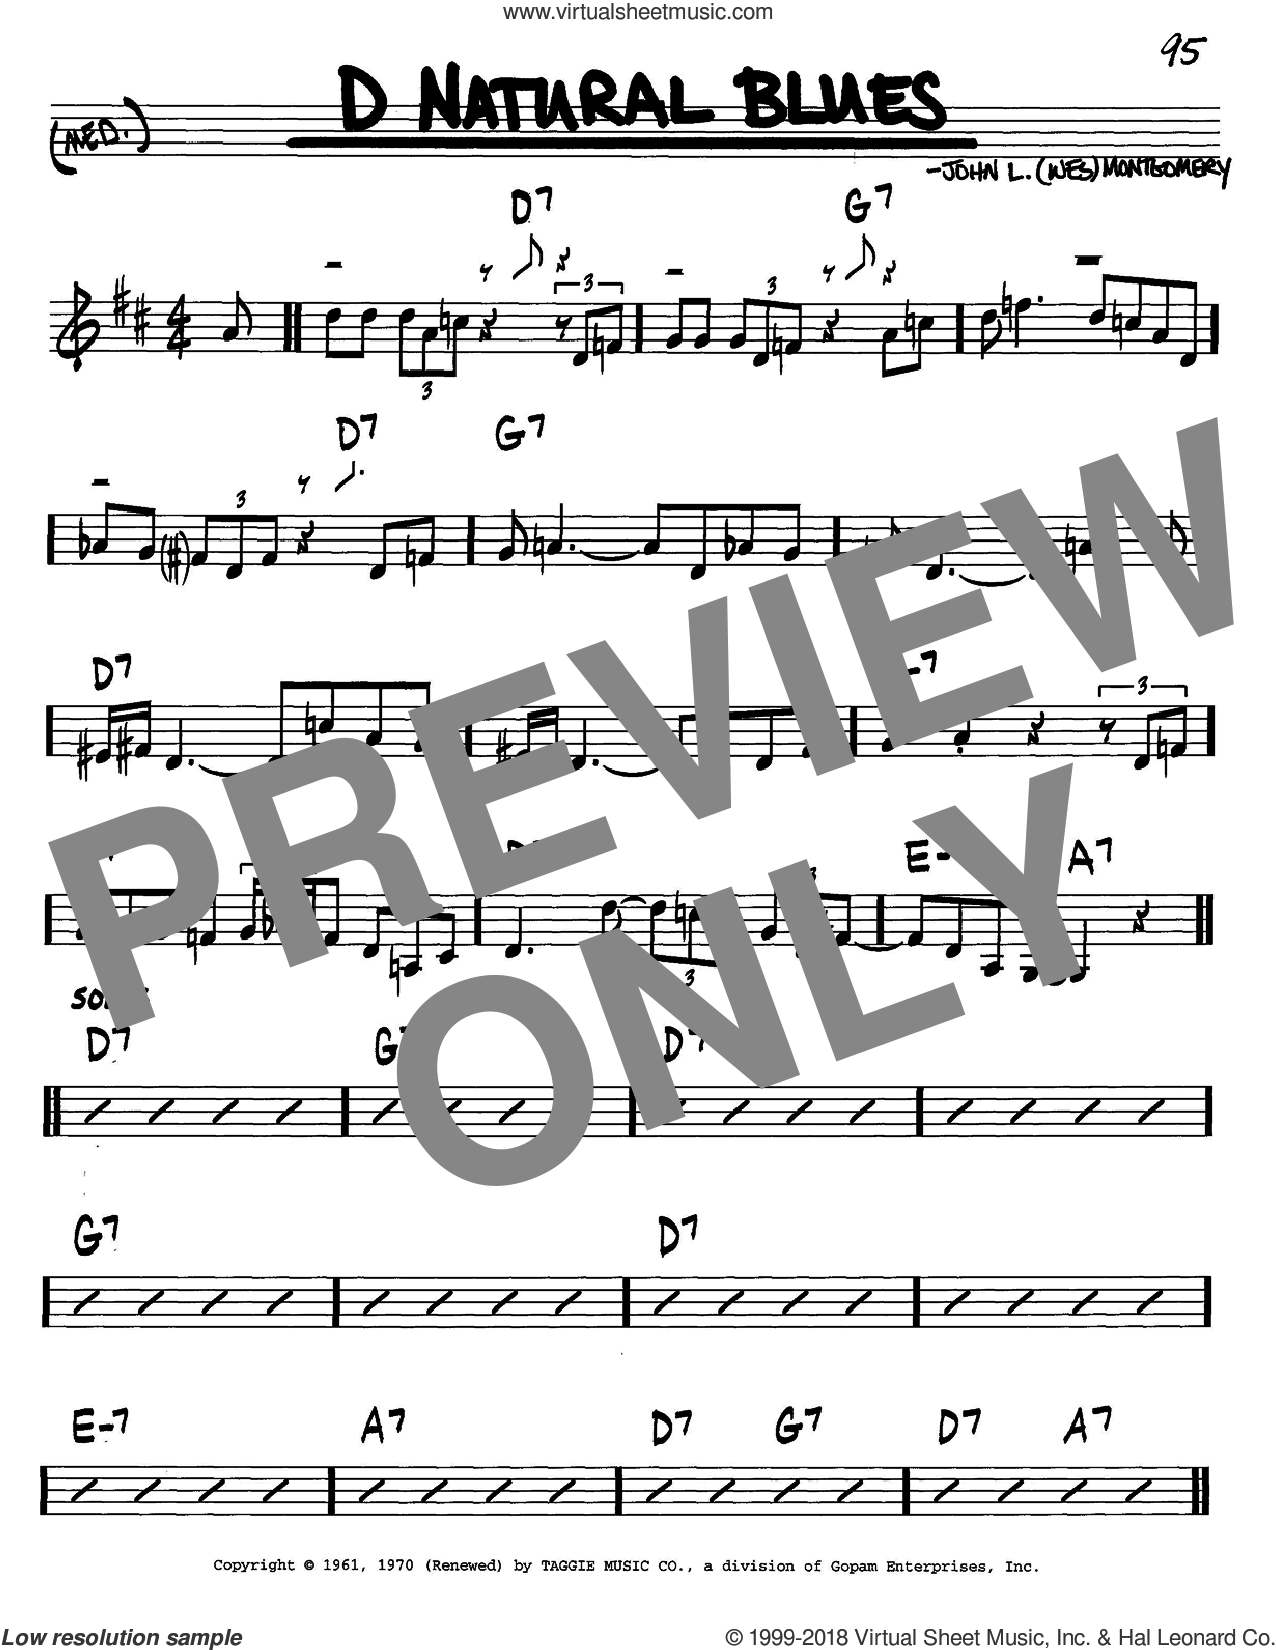 D Natural Blues sheet music for voice and other instruments (C) by Wes Montgomery. Score Image Preview.